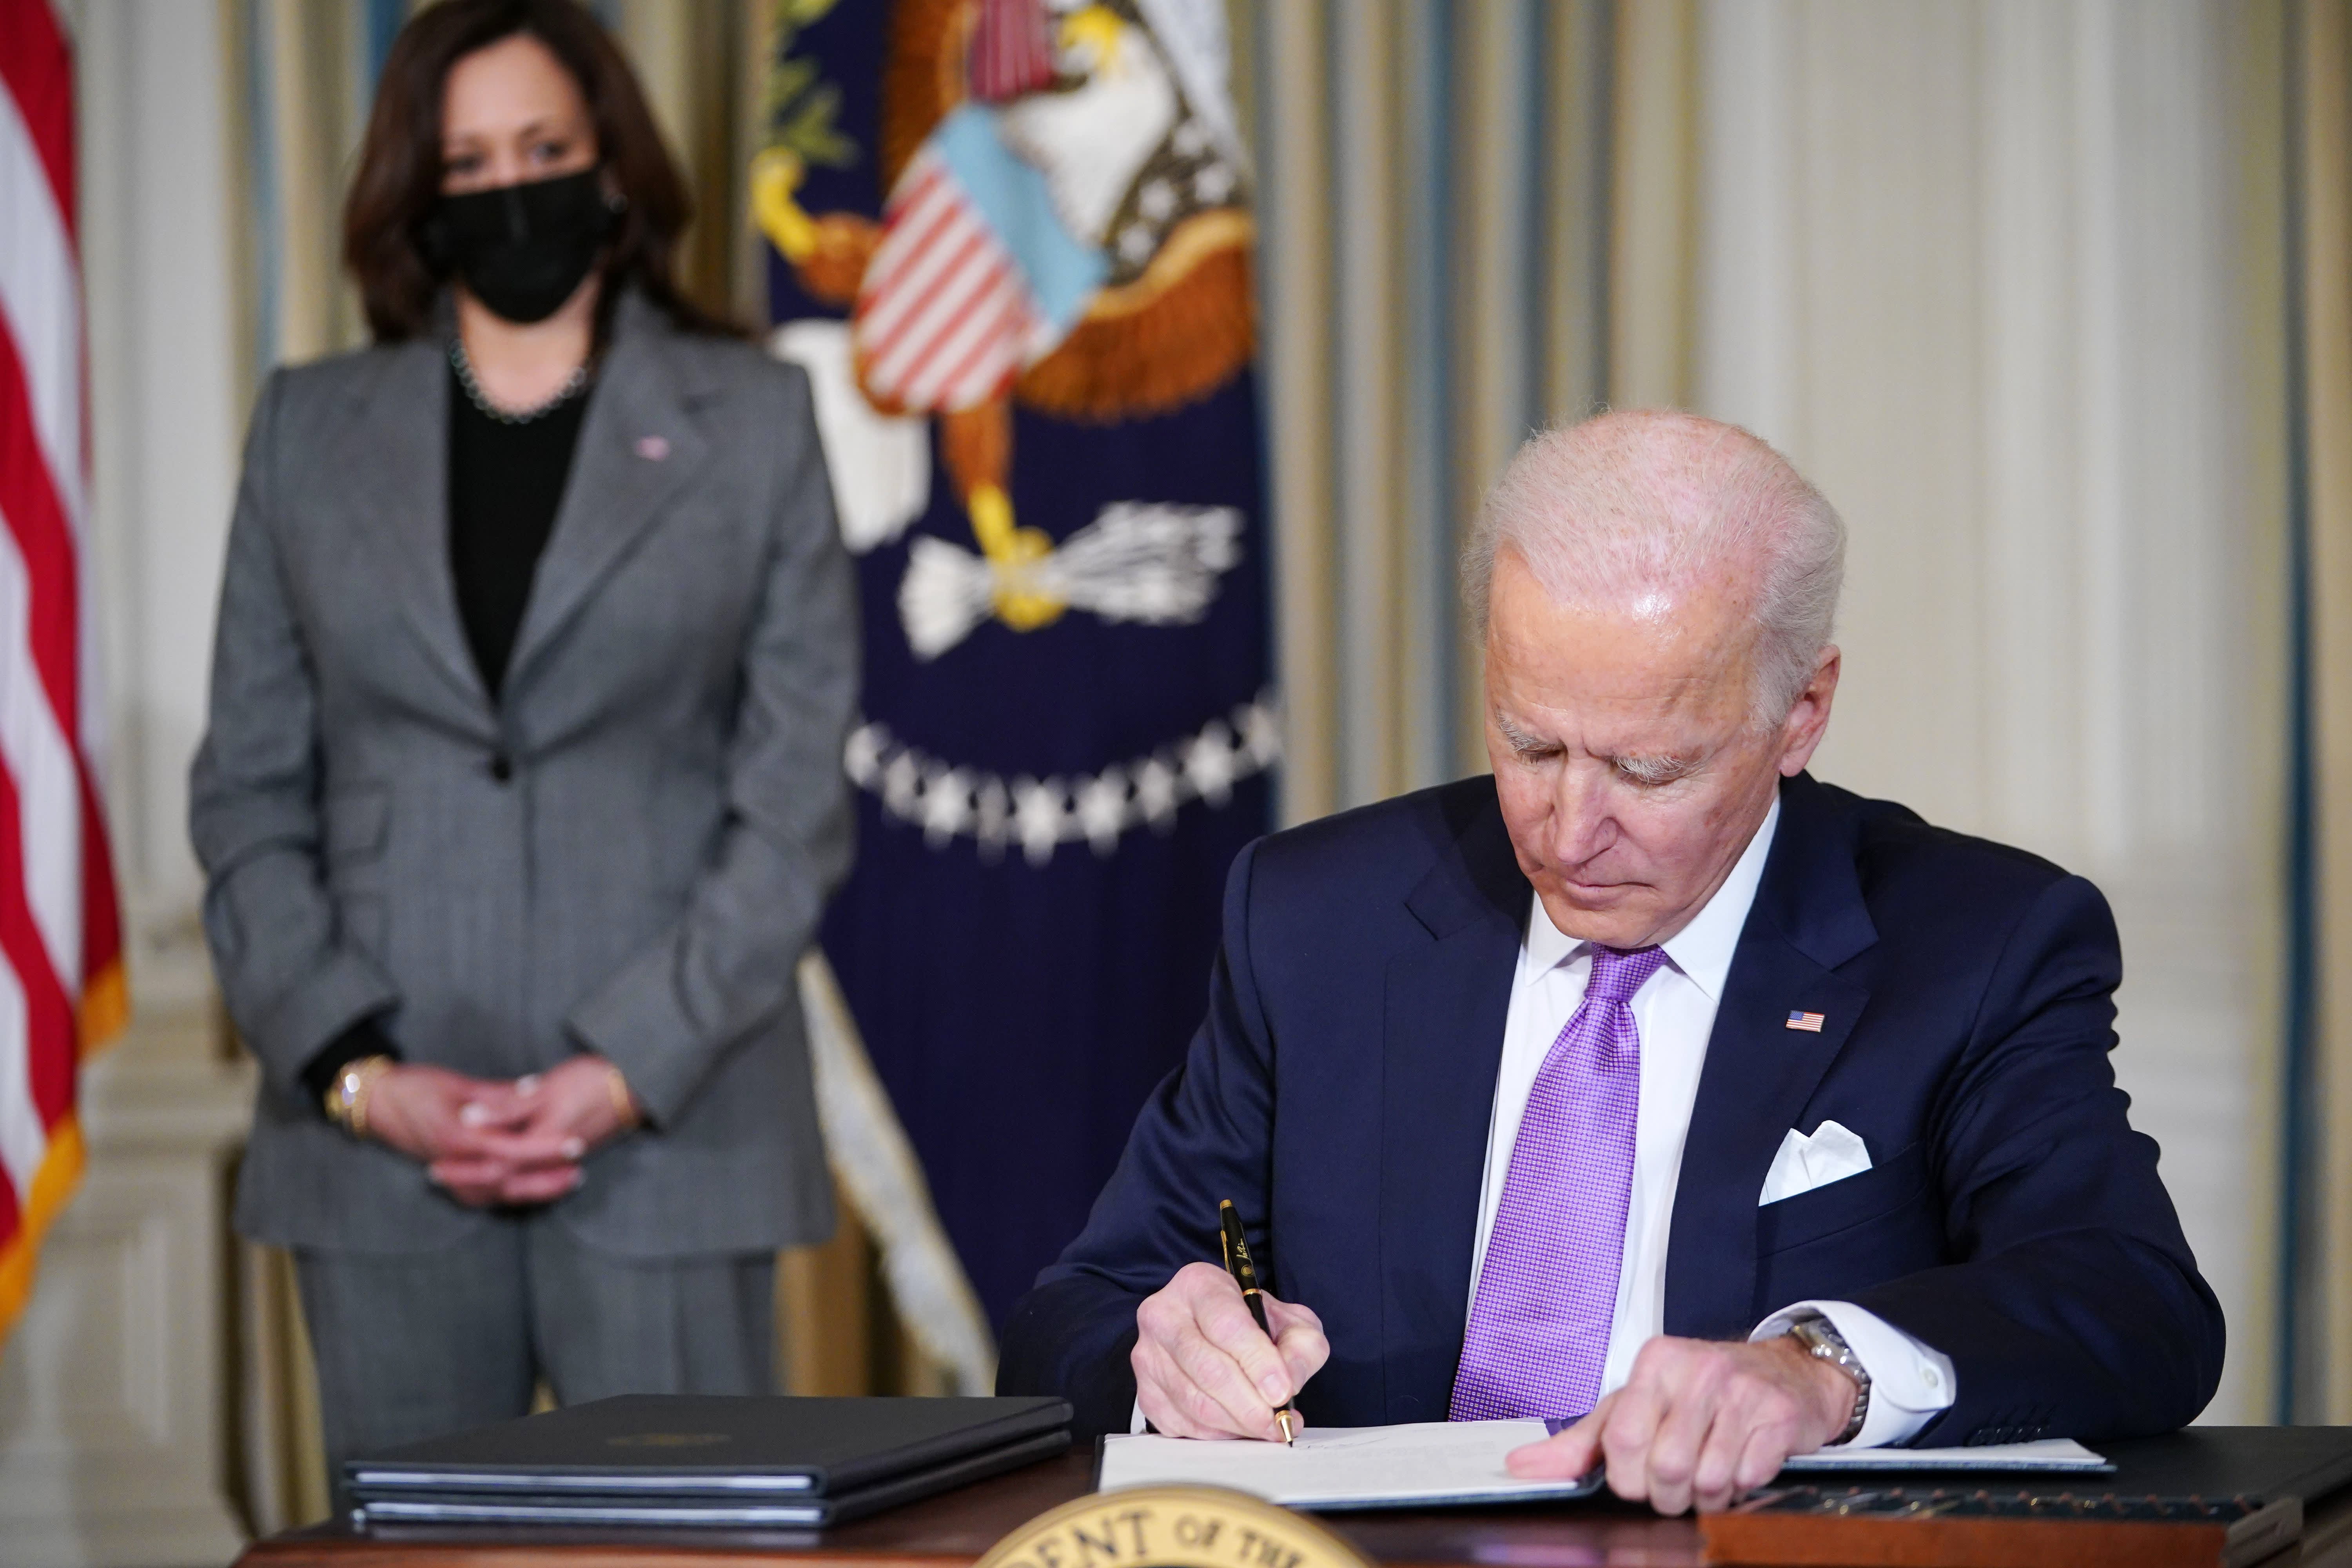 www.cnbc.com: President Biden pledges to fix the racial wealth gap. Here are his plans